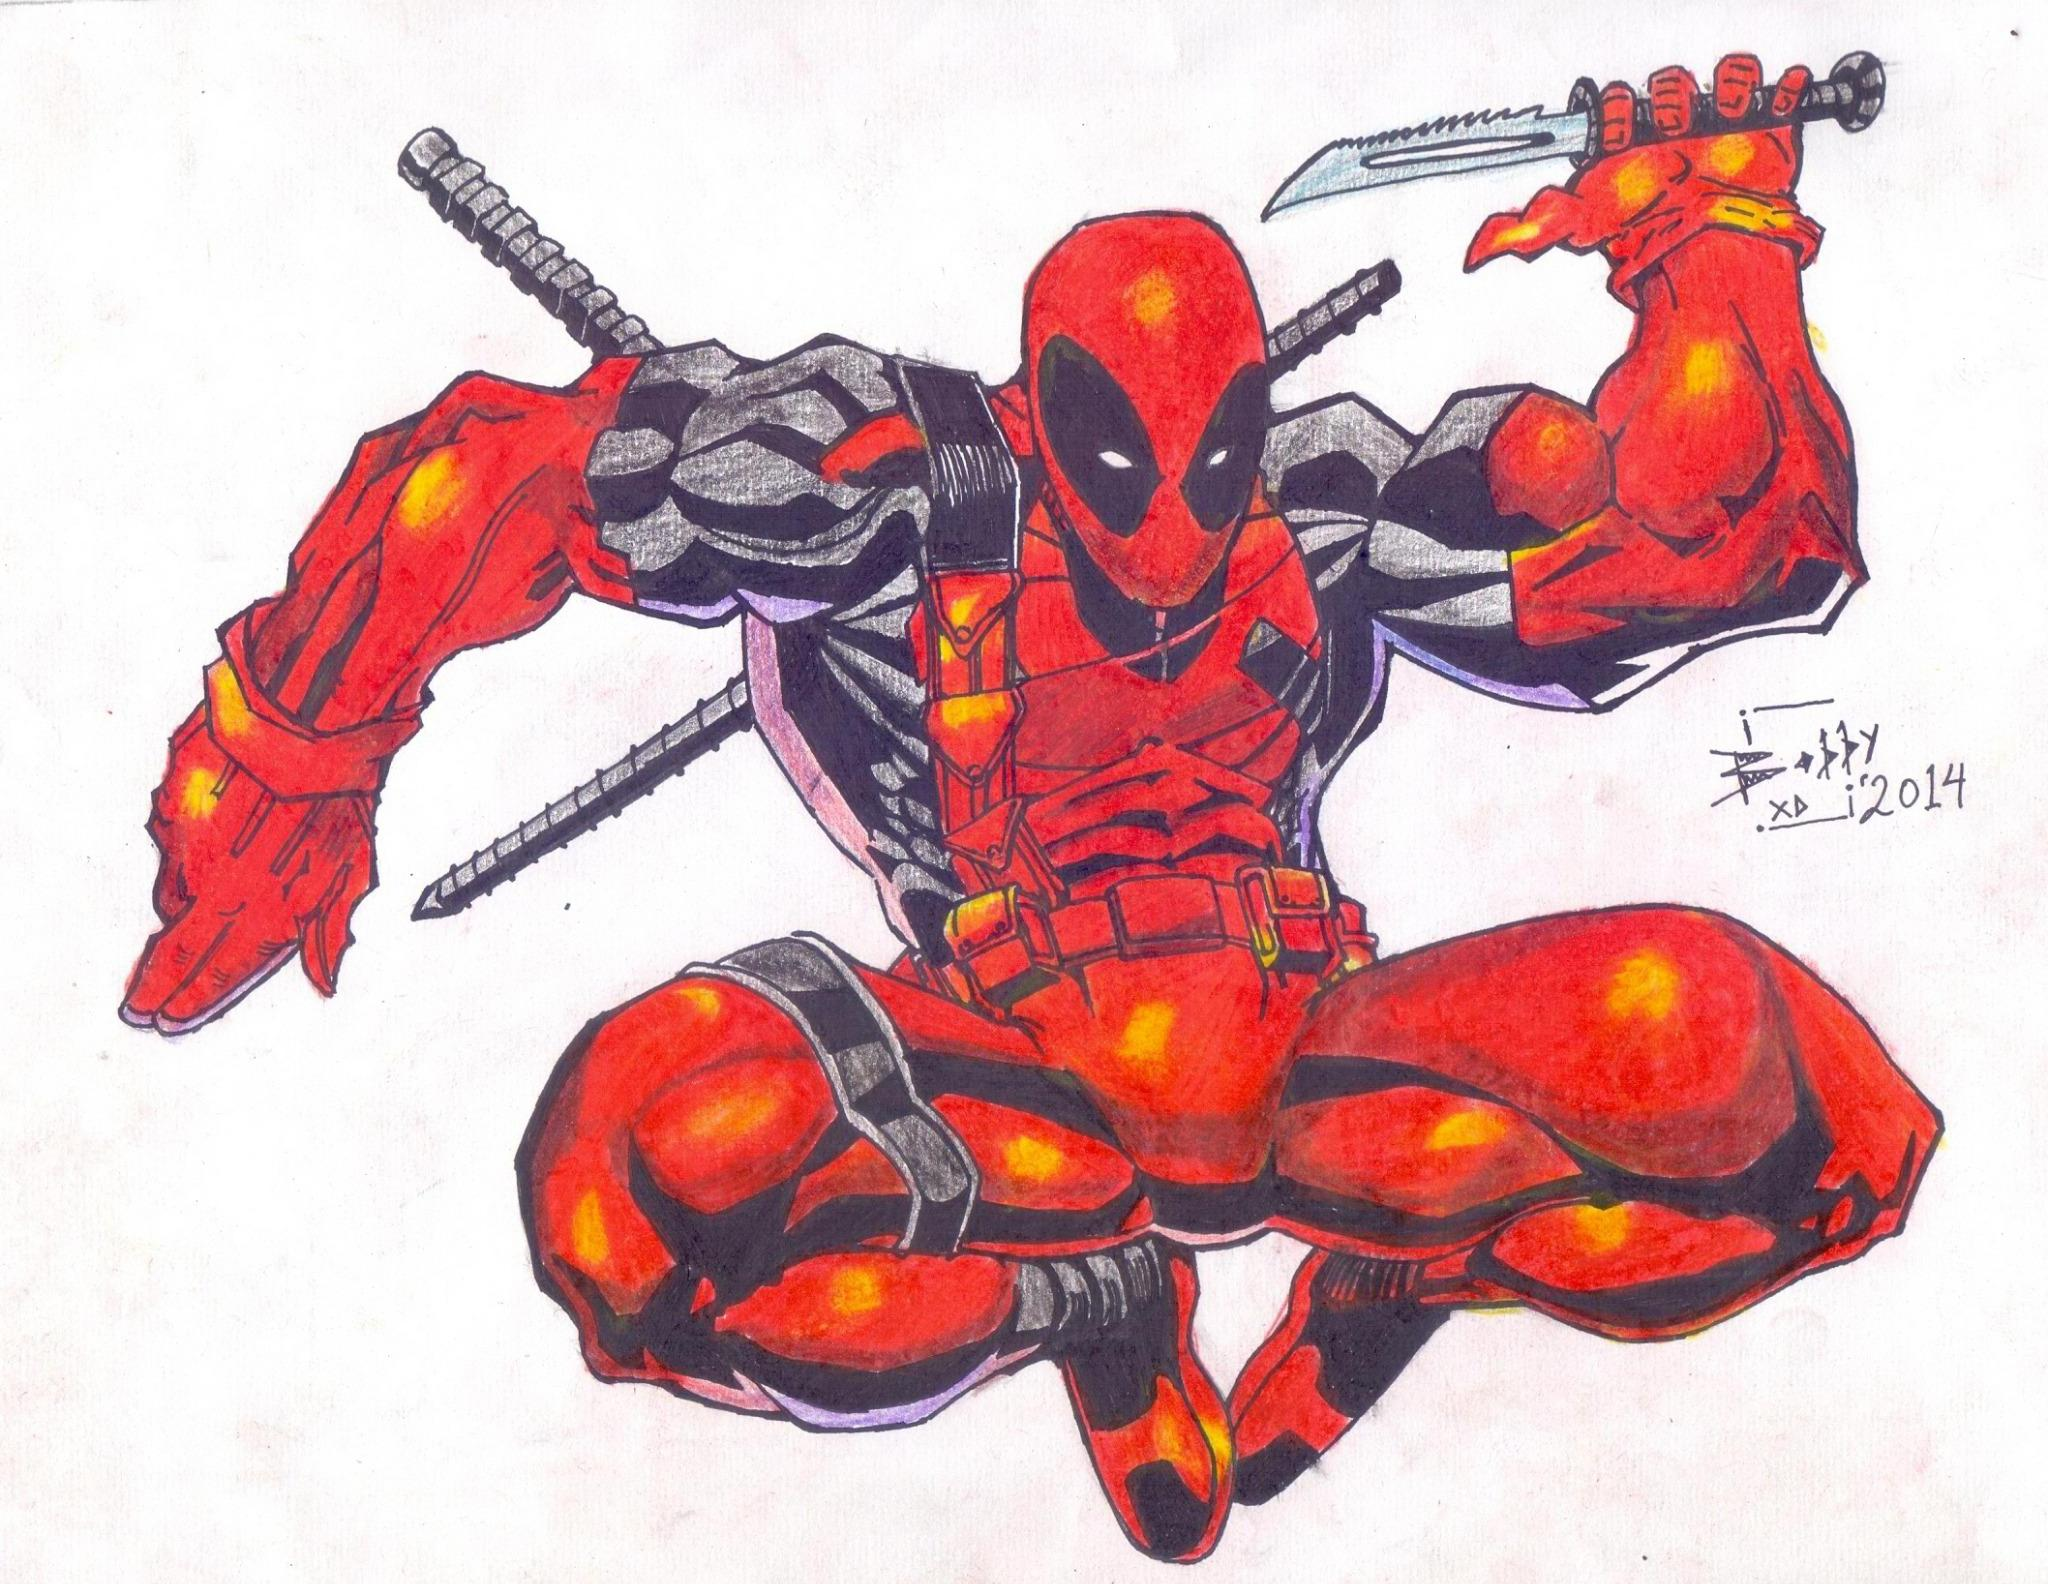 Leeplay On Twitter Bobby Xdee Deadpool Ink Colored Pencil Drawing Art Ink Fanart Pen Color Pencil Http T Co Athymokps1 Love Deadpool Nice Job